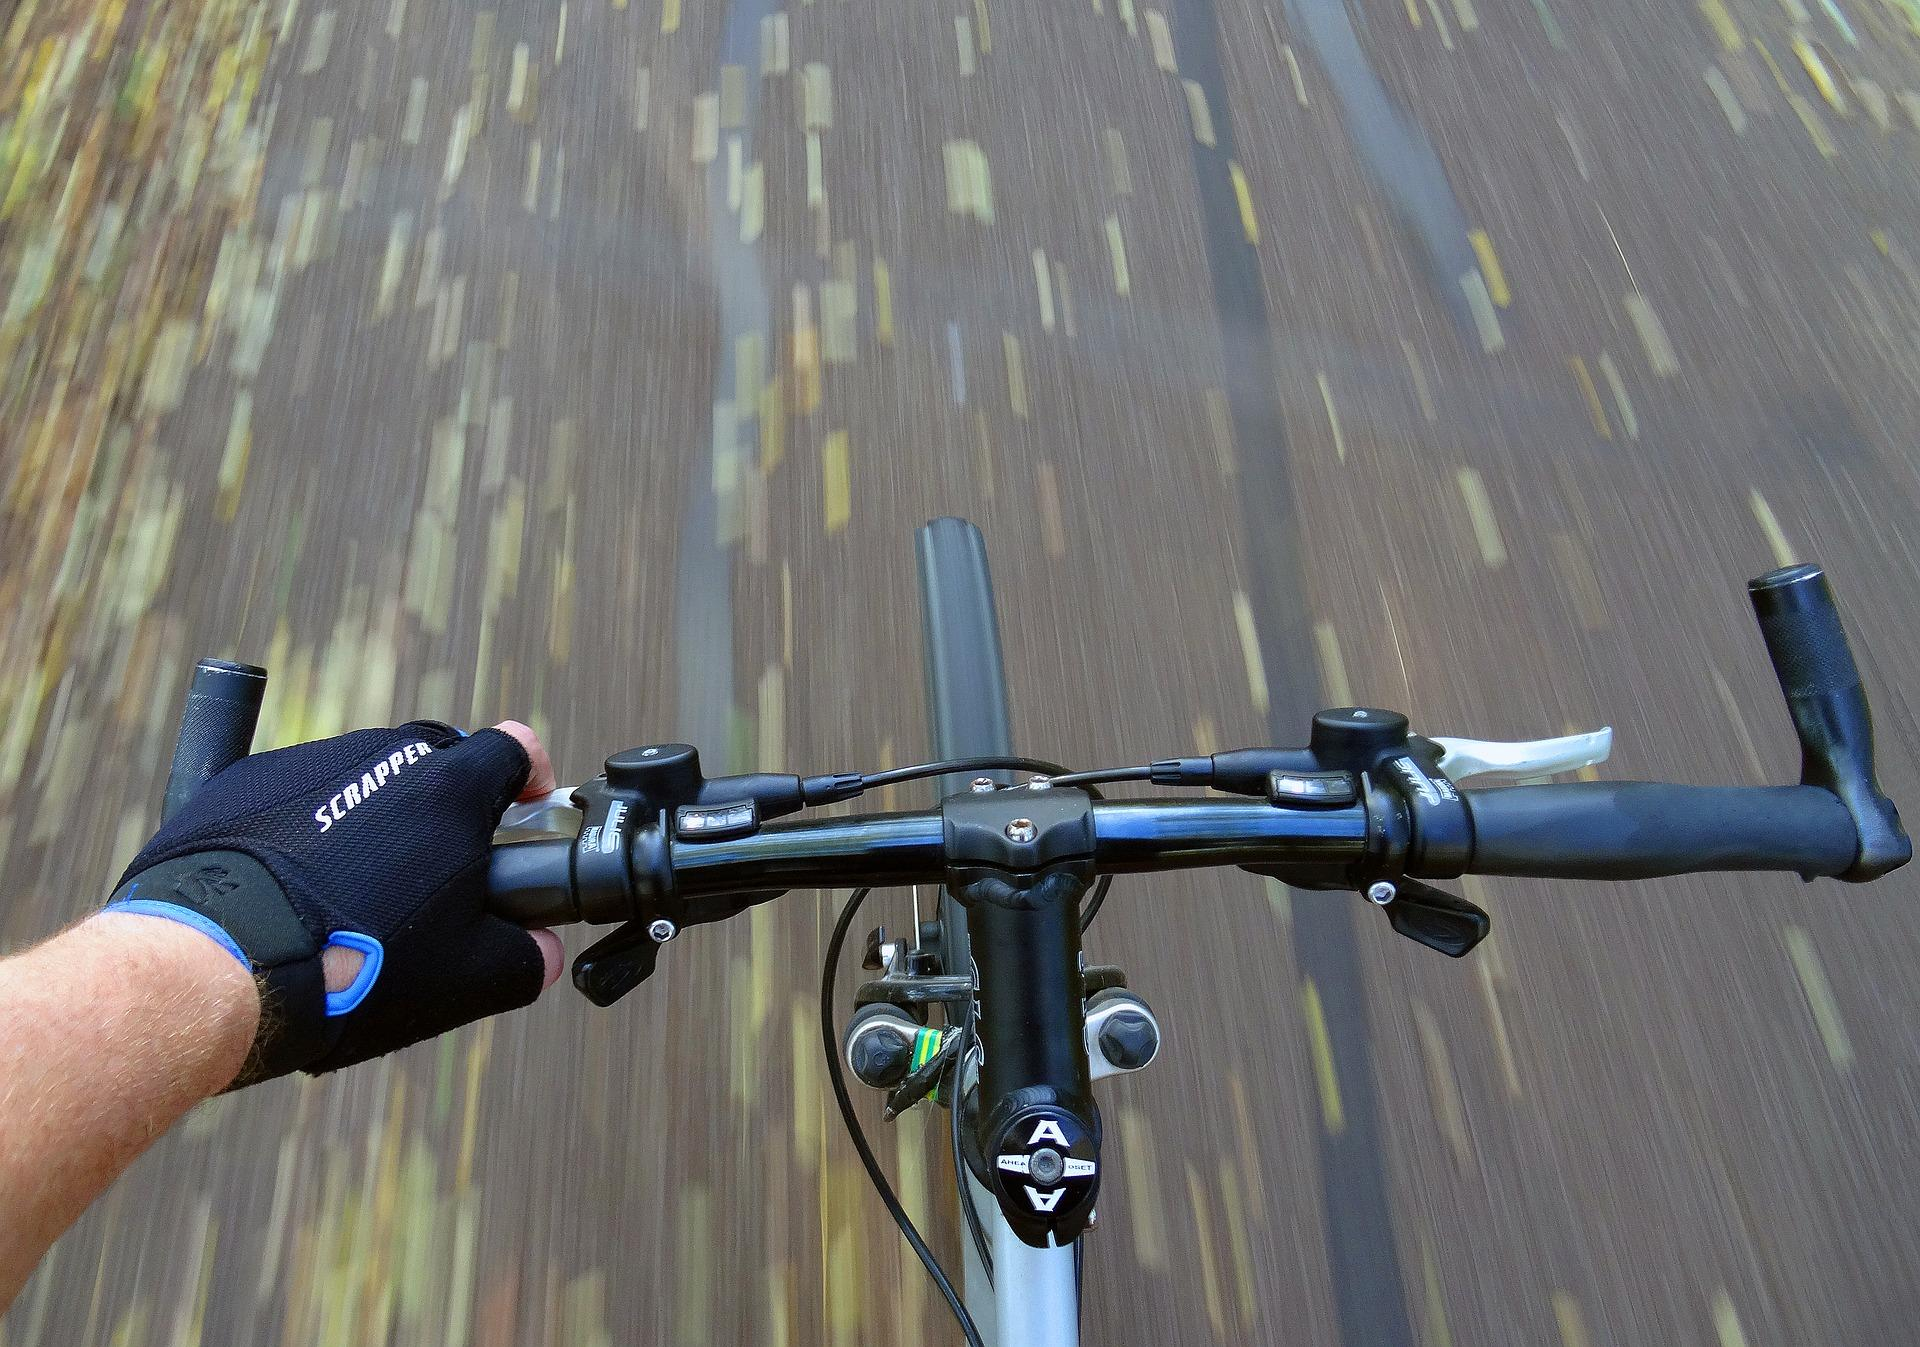 Long Mountain Bike Handlebars Off 65 Www Abrafiltros Org Br